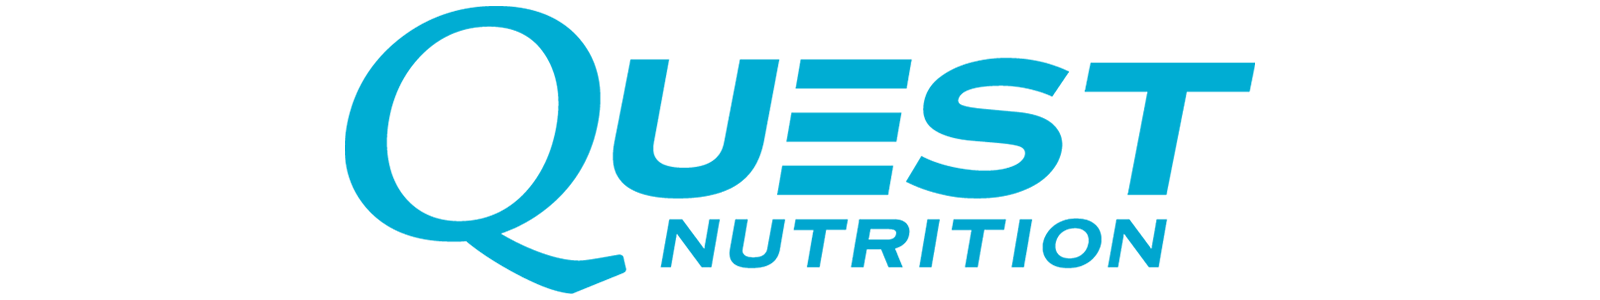 Brands - Quest Nutrition